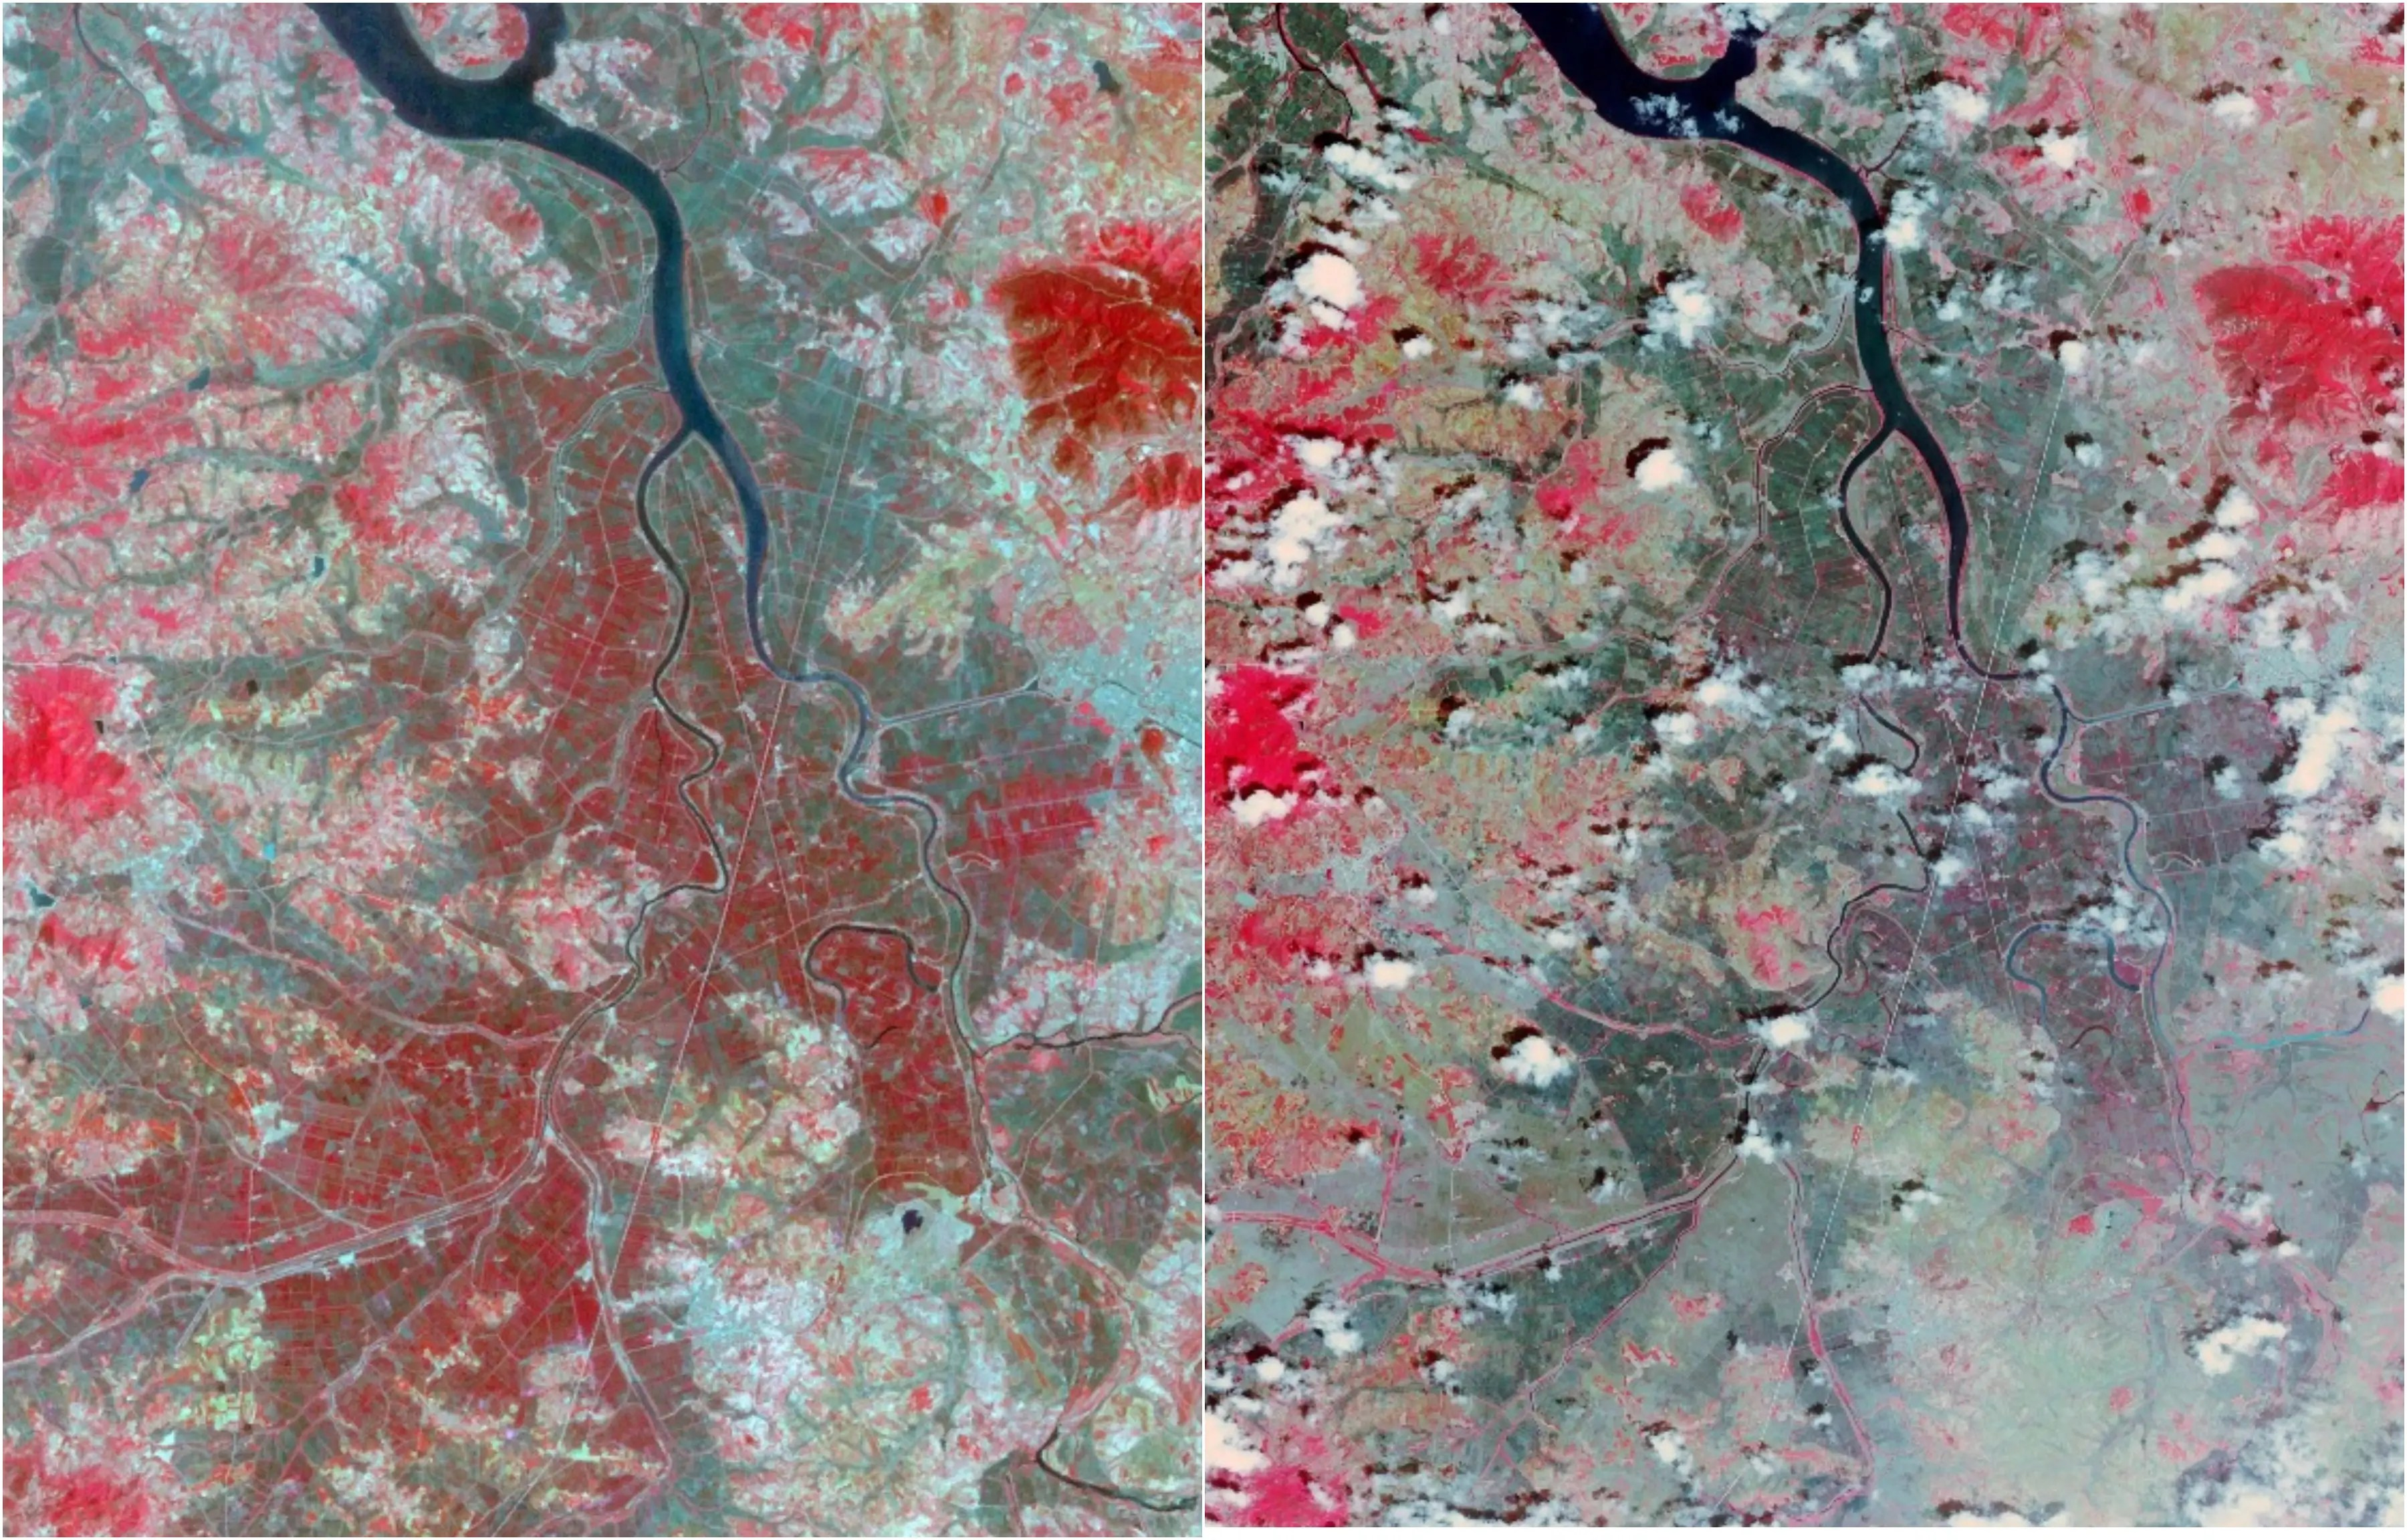 North Korea experienced one of the country's worst droughts in 2015 (right). You can see how much less vegetation (in red) there is compared to 2002 (left).